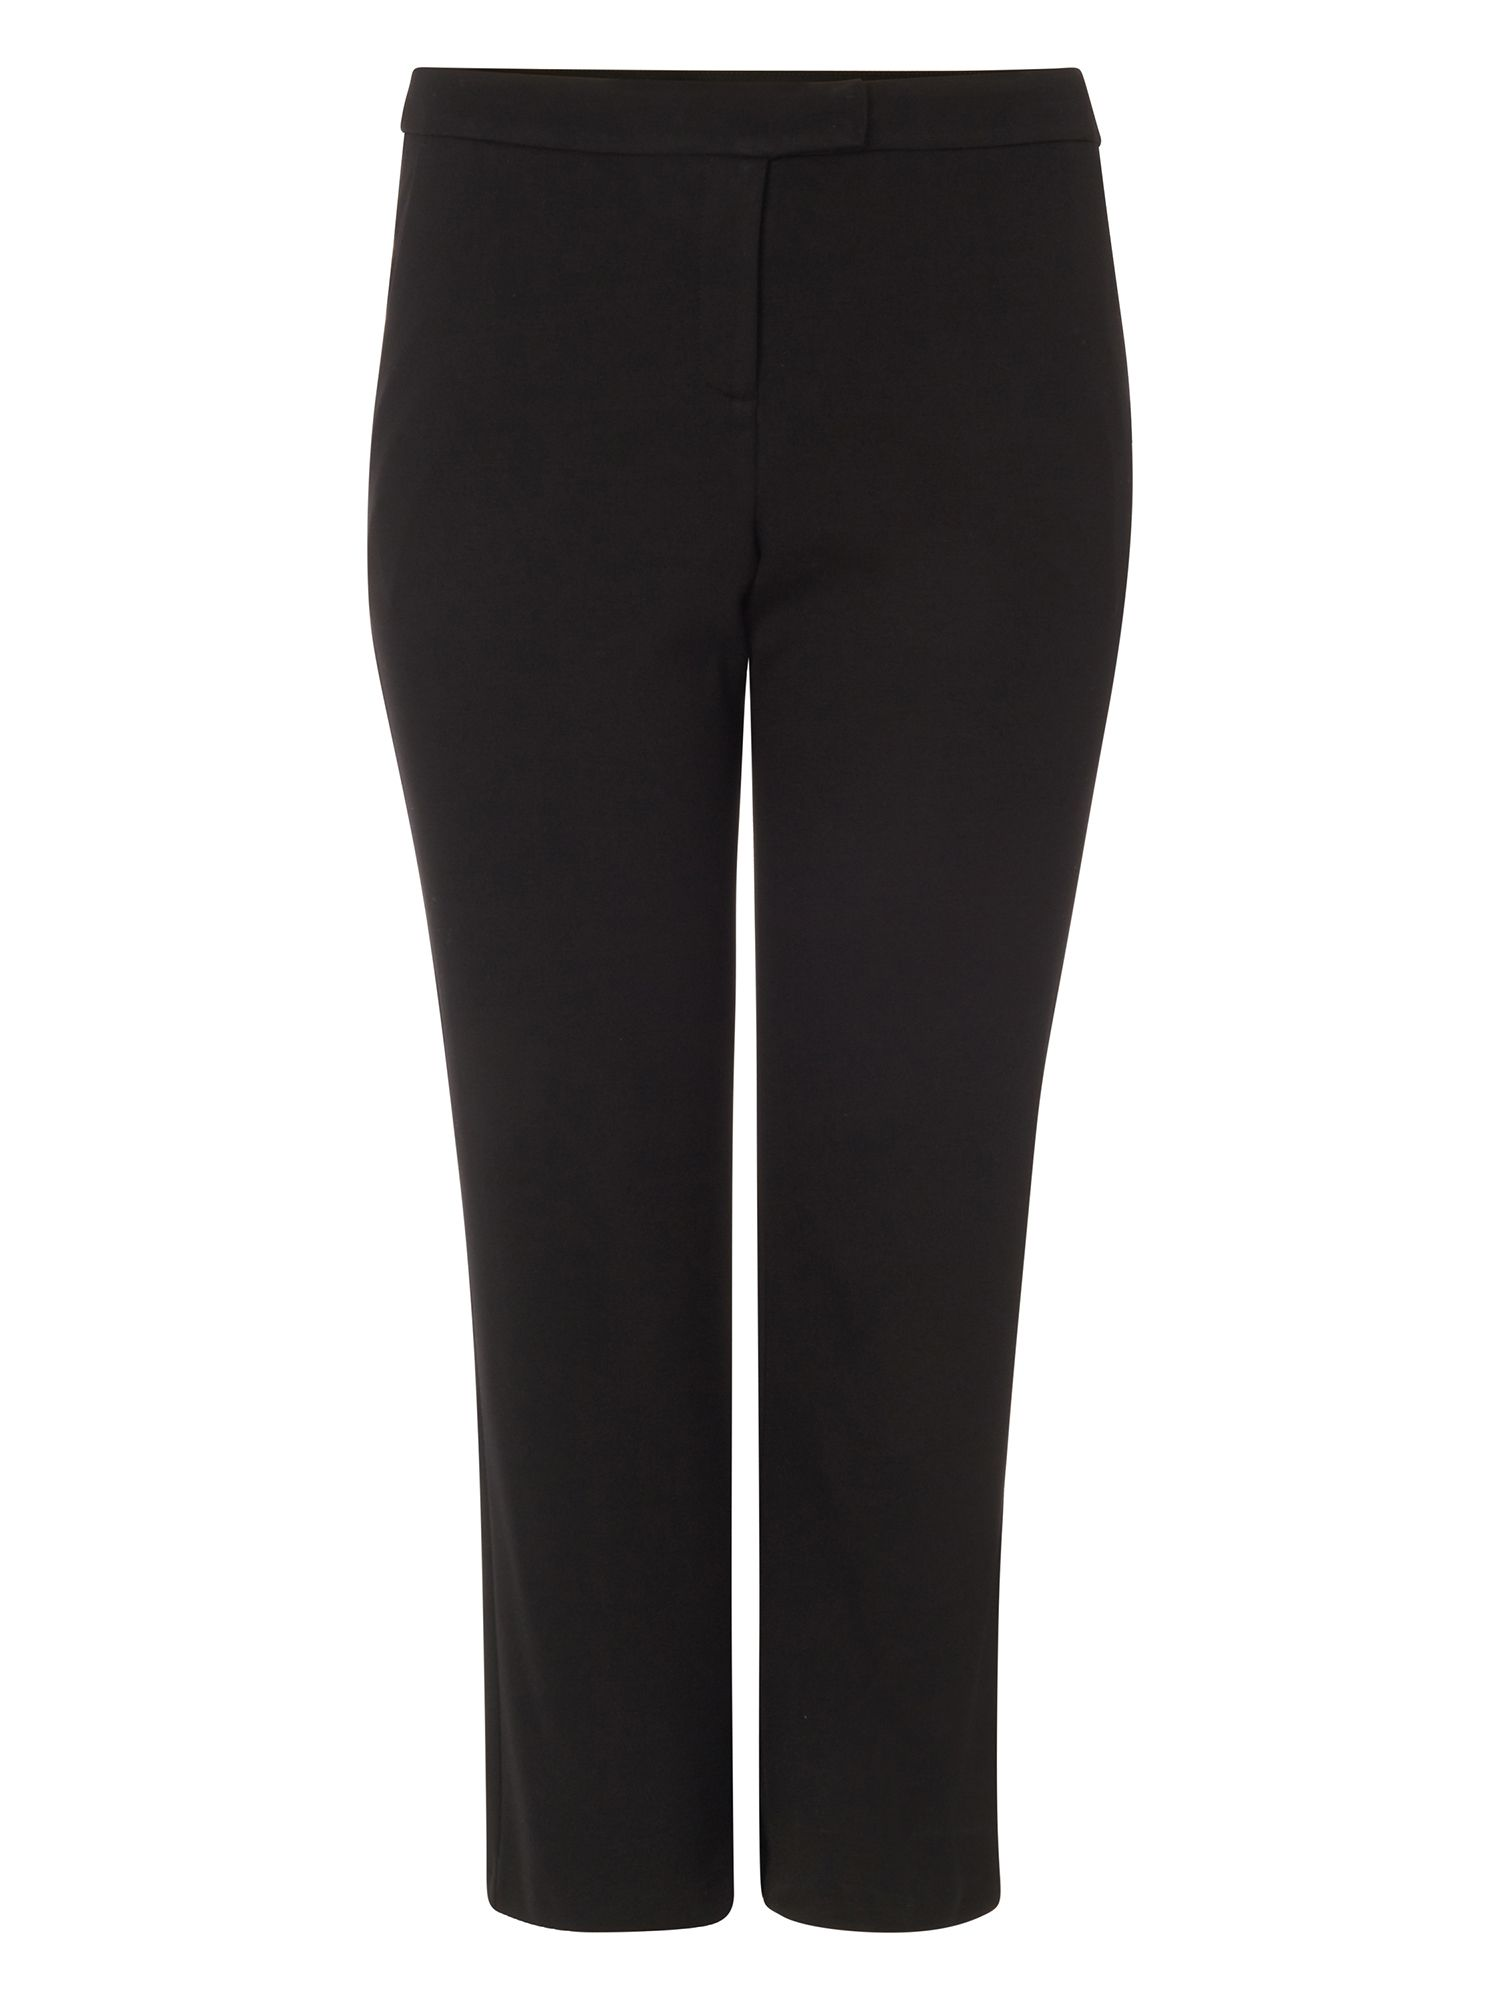 Studio 8 Phillis Trousers, Black